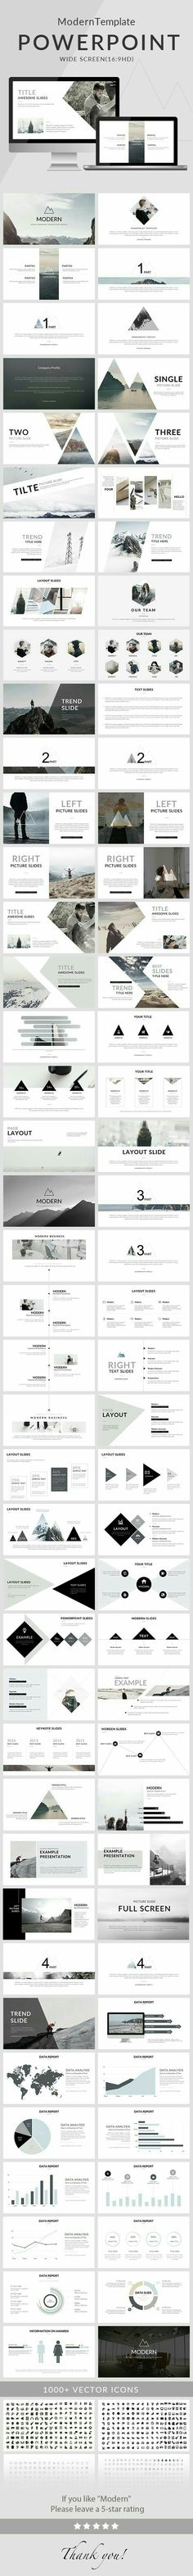 Nice and clean modern PowerPoint presentation template for creative presentations. 80 slides to emphasize the key points of the presentation and create a great impression on the viewers. Powerpoint Design, Creative Powerpoint Templates, Free Powerpoint Templates Download, Ppt Free, Graphisches Design, Slide Design, Logo Design, Interior Design, Resume Design